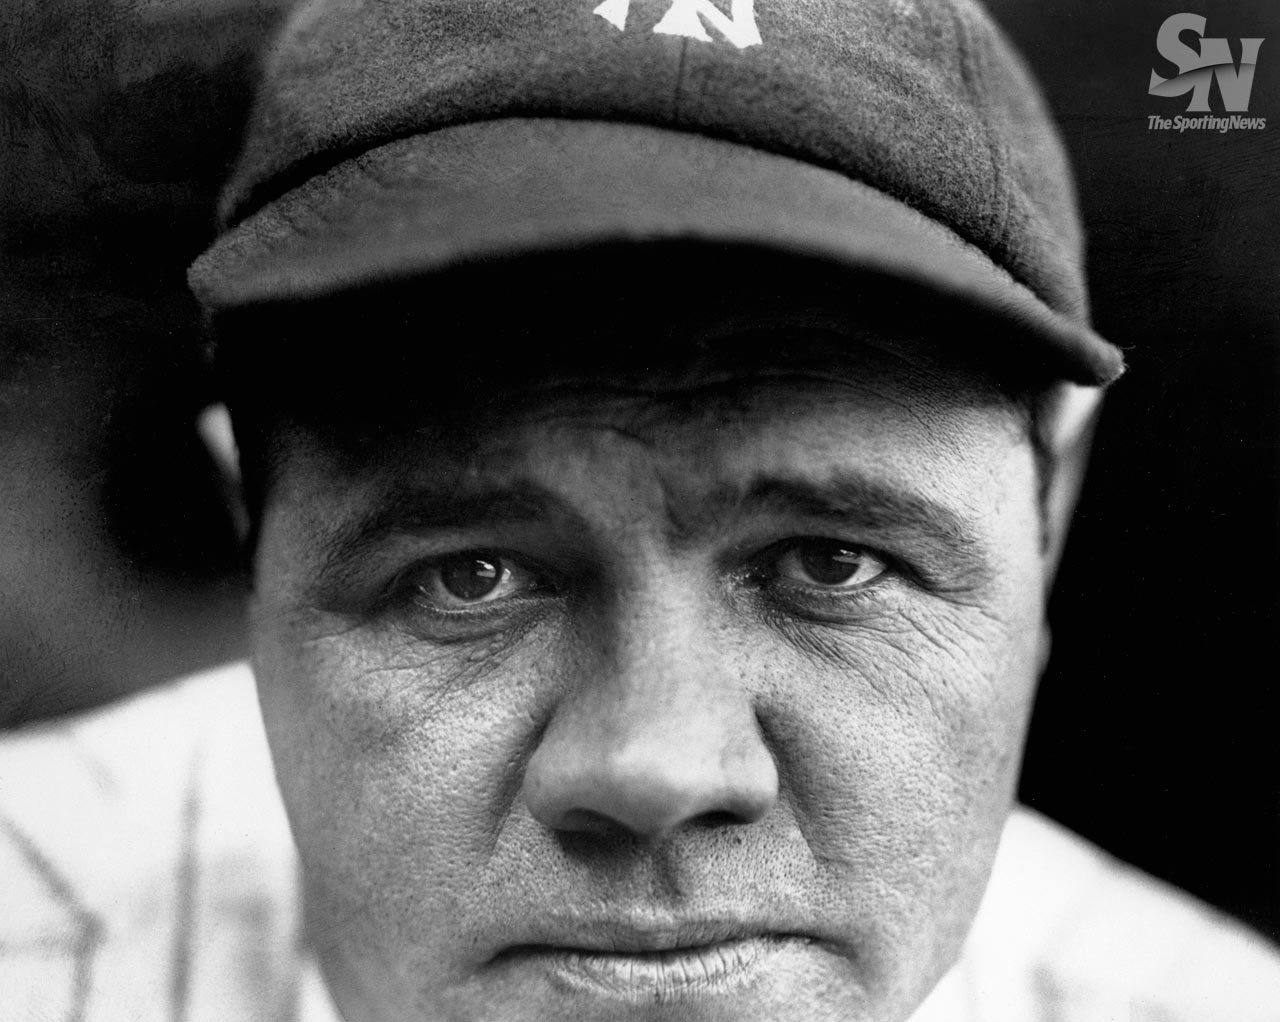 "photographersdirectory:  New York Yankees Babe Ruth in 1927. (Charles M. Conlon/Sporting News) I am the senior photo editor at Sporting News.  I have been with Sporting News for more than 15 years.  The Sporting News was founded in 1886 and acquired the nickname ""The Bible of Baseball"".  Or photo archives include hundreds of thousands of photographs dating back almost a hundred years.  Our most famous photographer in our collection is Charles M. Conlon.  Conlon took thousands of portraits of major league baseball players. His most famous photos are an action shot of Ty Cobb sliding into third base and this stunning closeup of Babe Ruth. As curator of the Sporting News Archive Tumblr http://sportingnewsarchive.tumblr.com/page/6   I post historical photographs from our archives as well as current day photographs.  The Sporting News Archive Tumblr is the place to remember the history of sports as well as experience today's history making sporting events all through the lens of the sports photographer. - Paul Nisely"